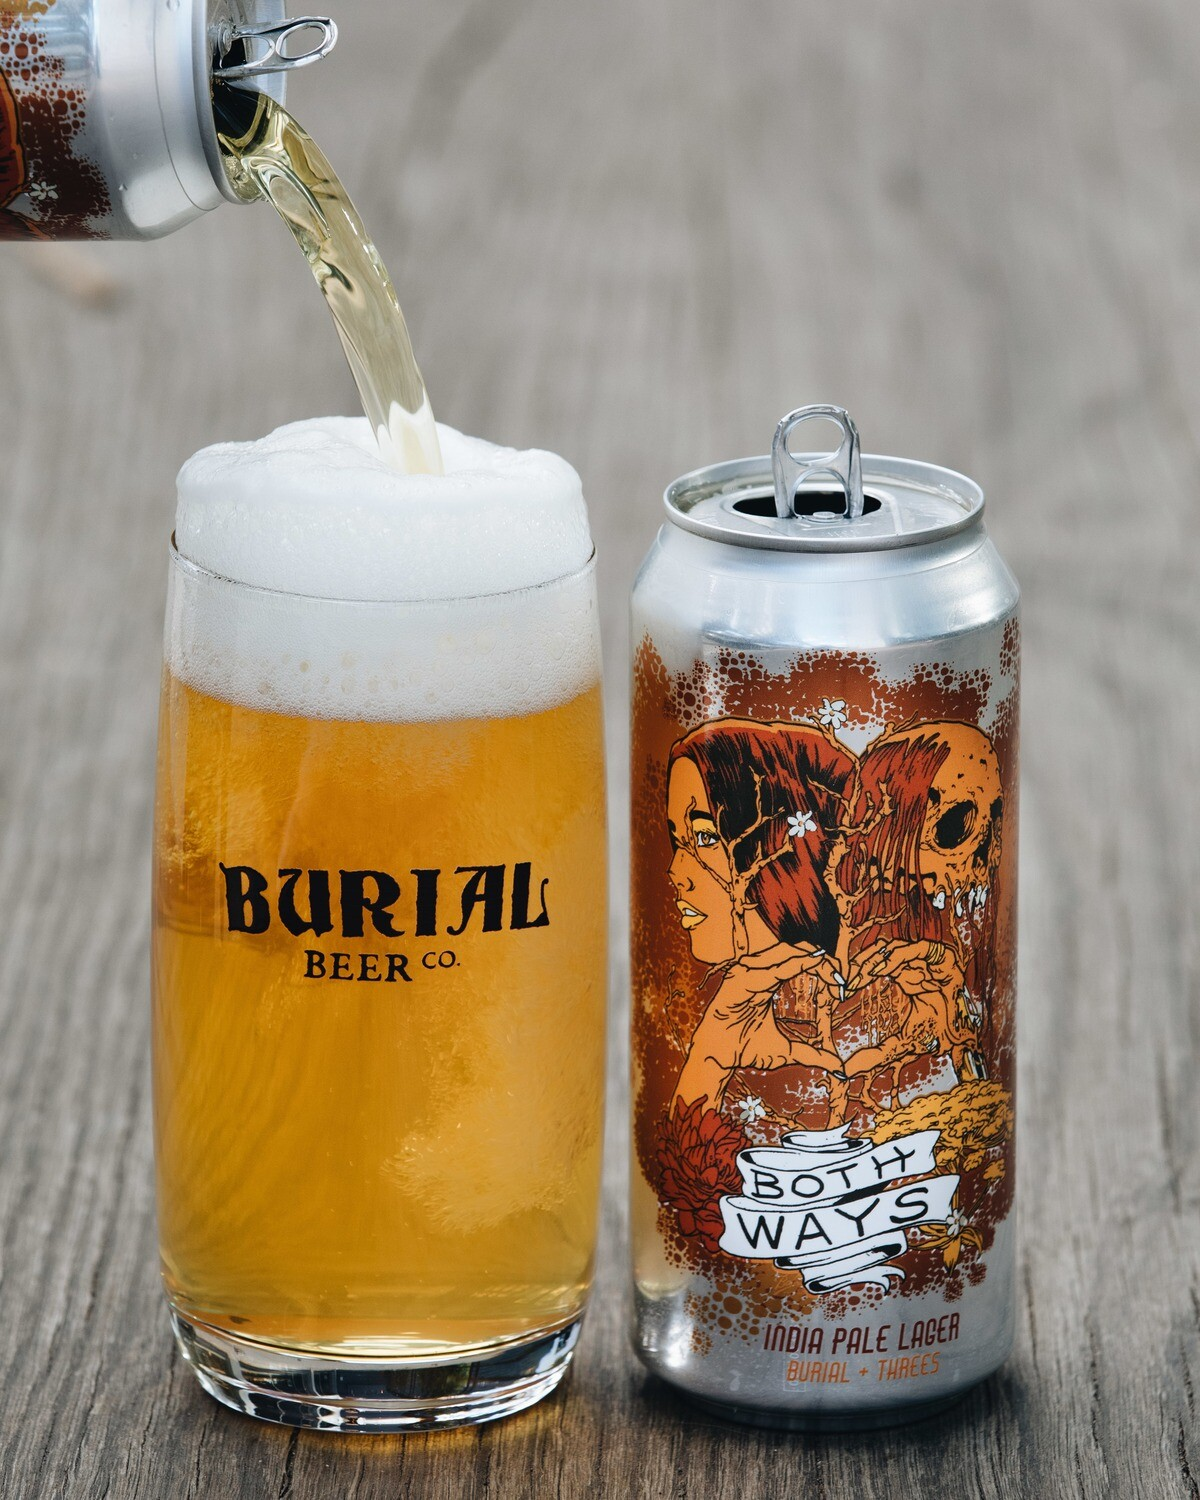 Burial Both Ways India Pale Lager